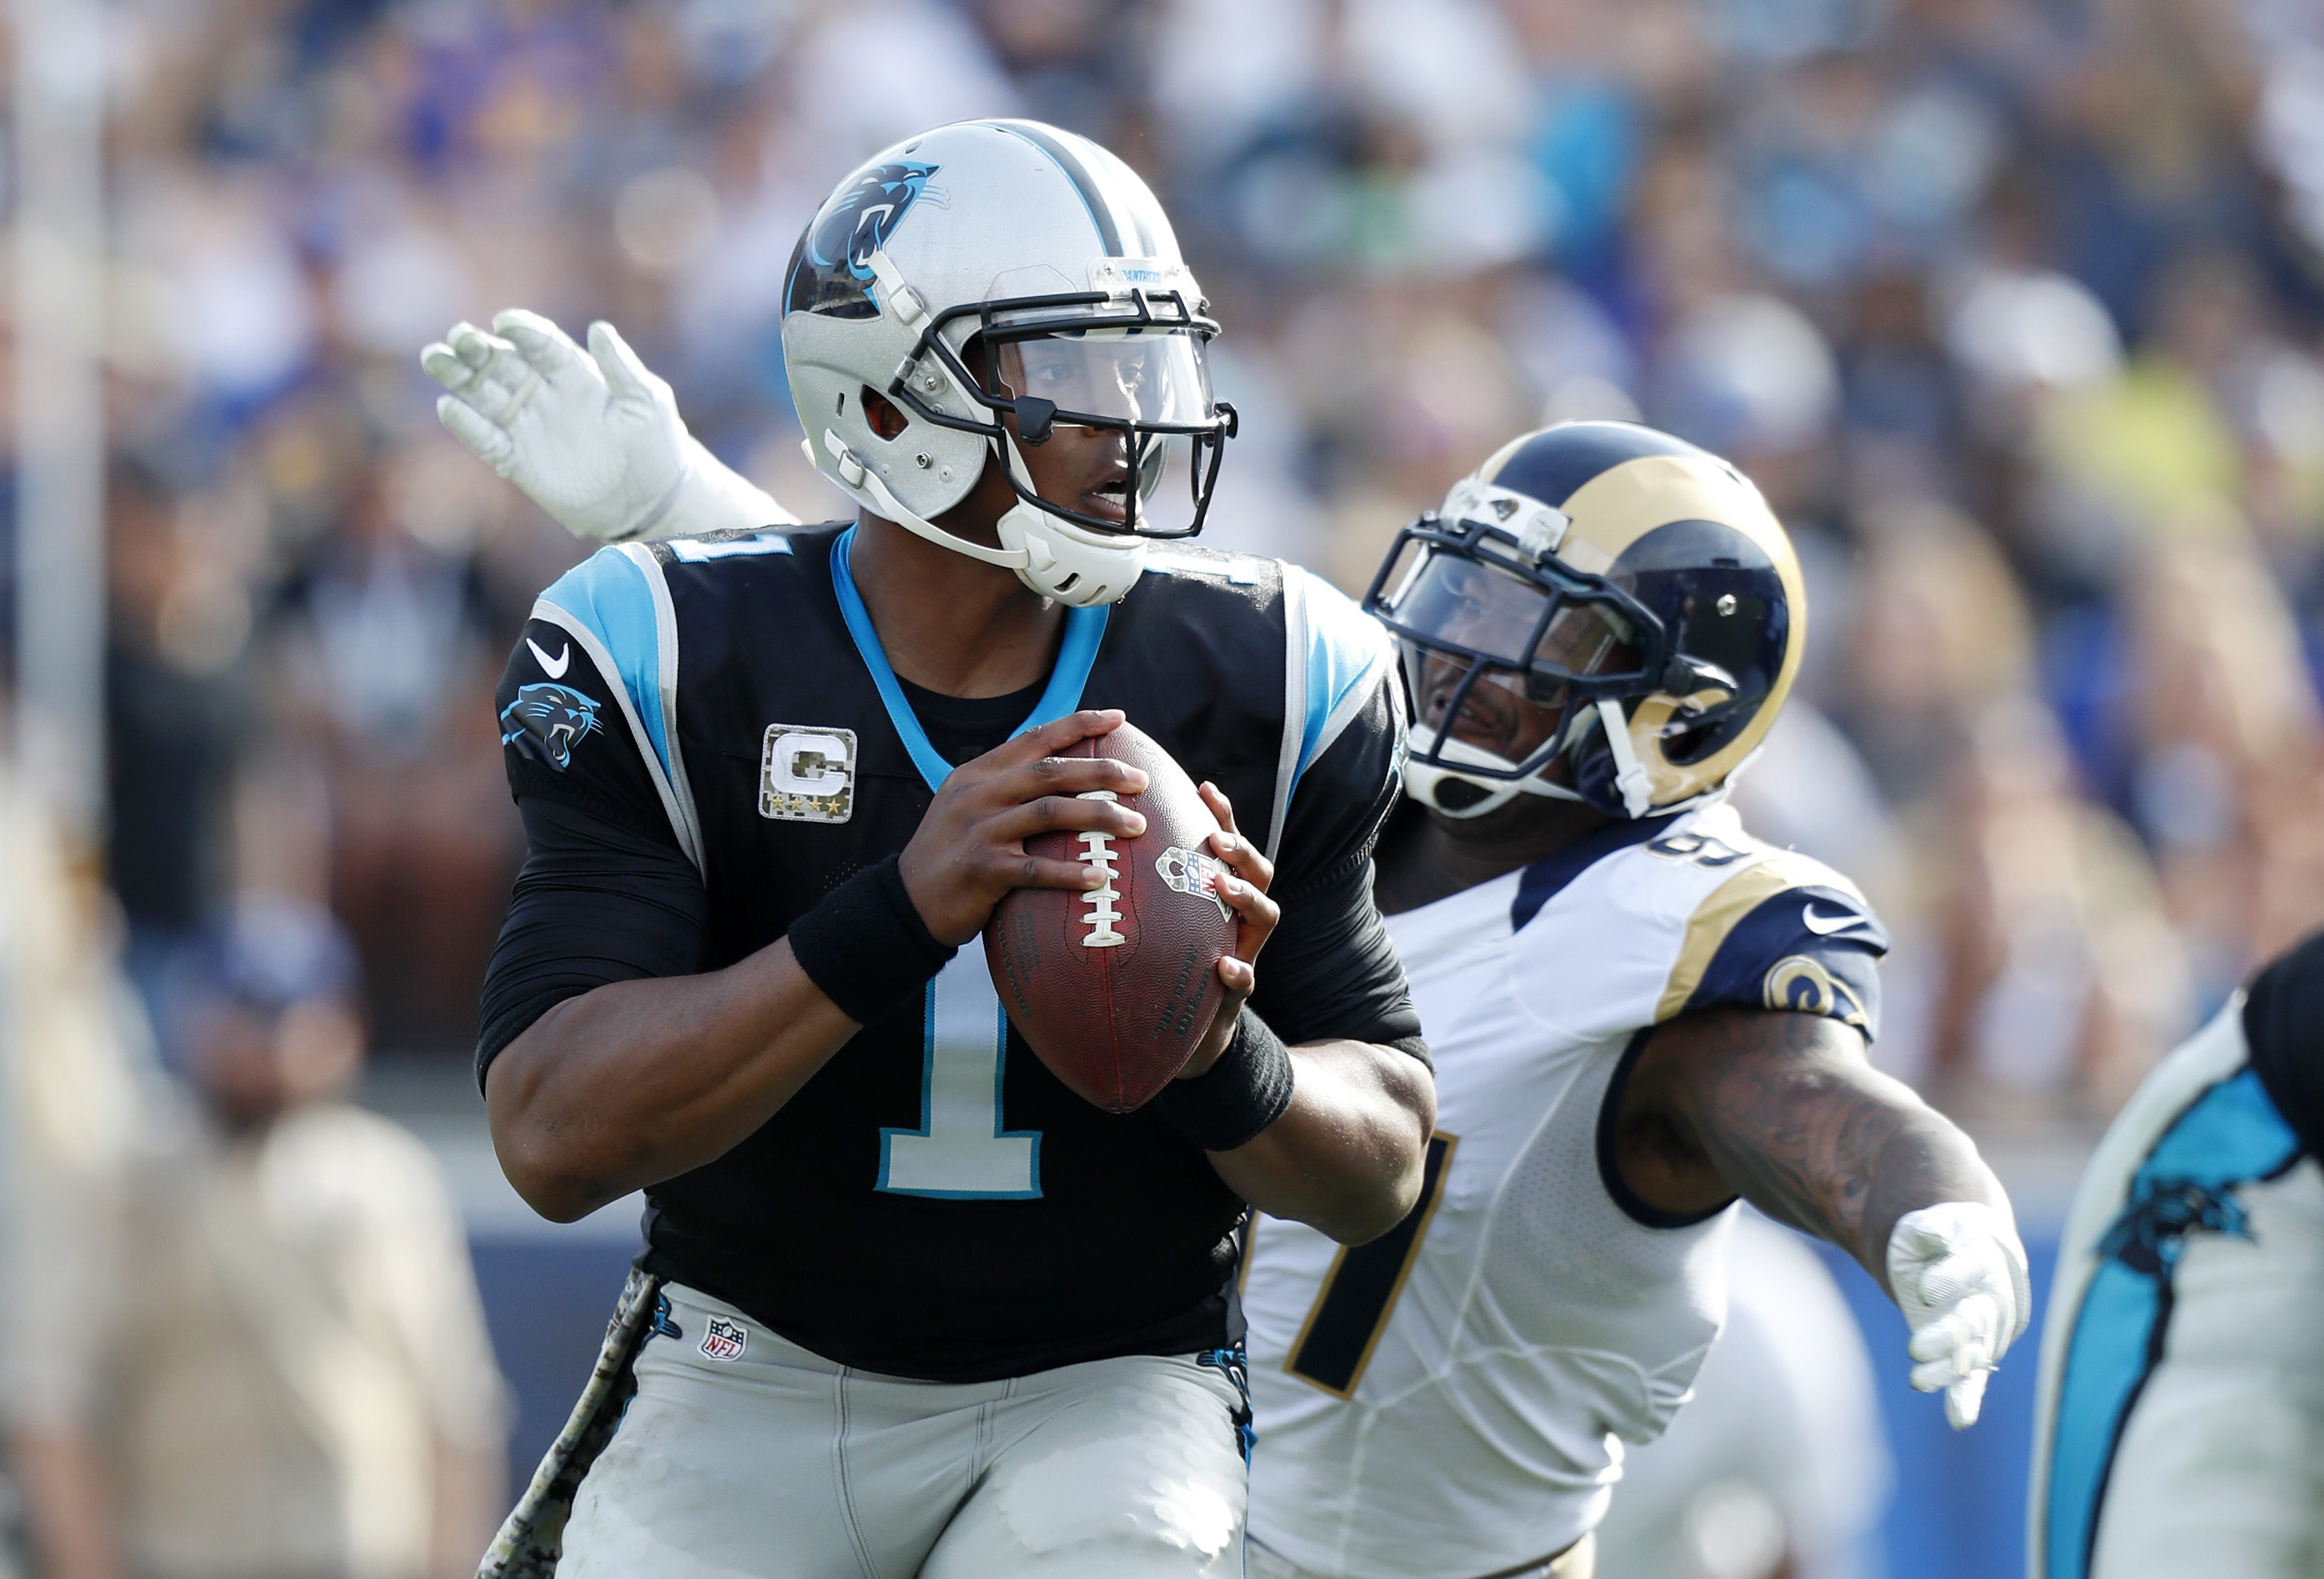 Carolina Panthers quarterback Cam Newton, left, is sacked by Los Angeles Rams defensive end Eugene Sims during the first half of an NFL football game, Sunday, Nov. 6, 2016, in Los Angeles. (AP Photo/Ryan Kang)